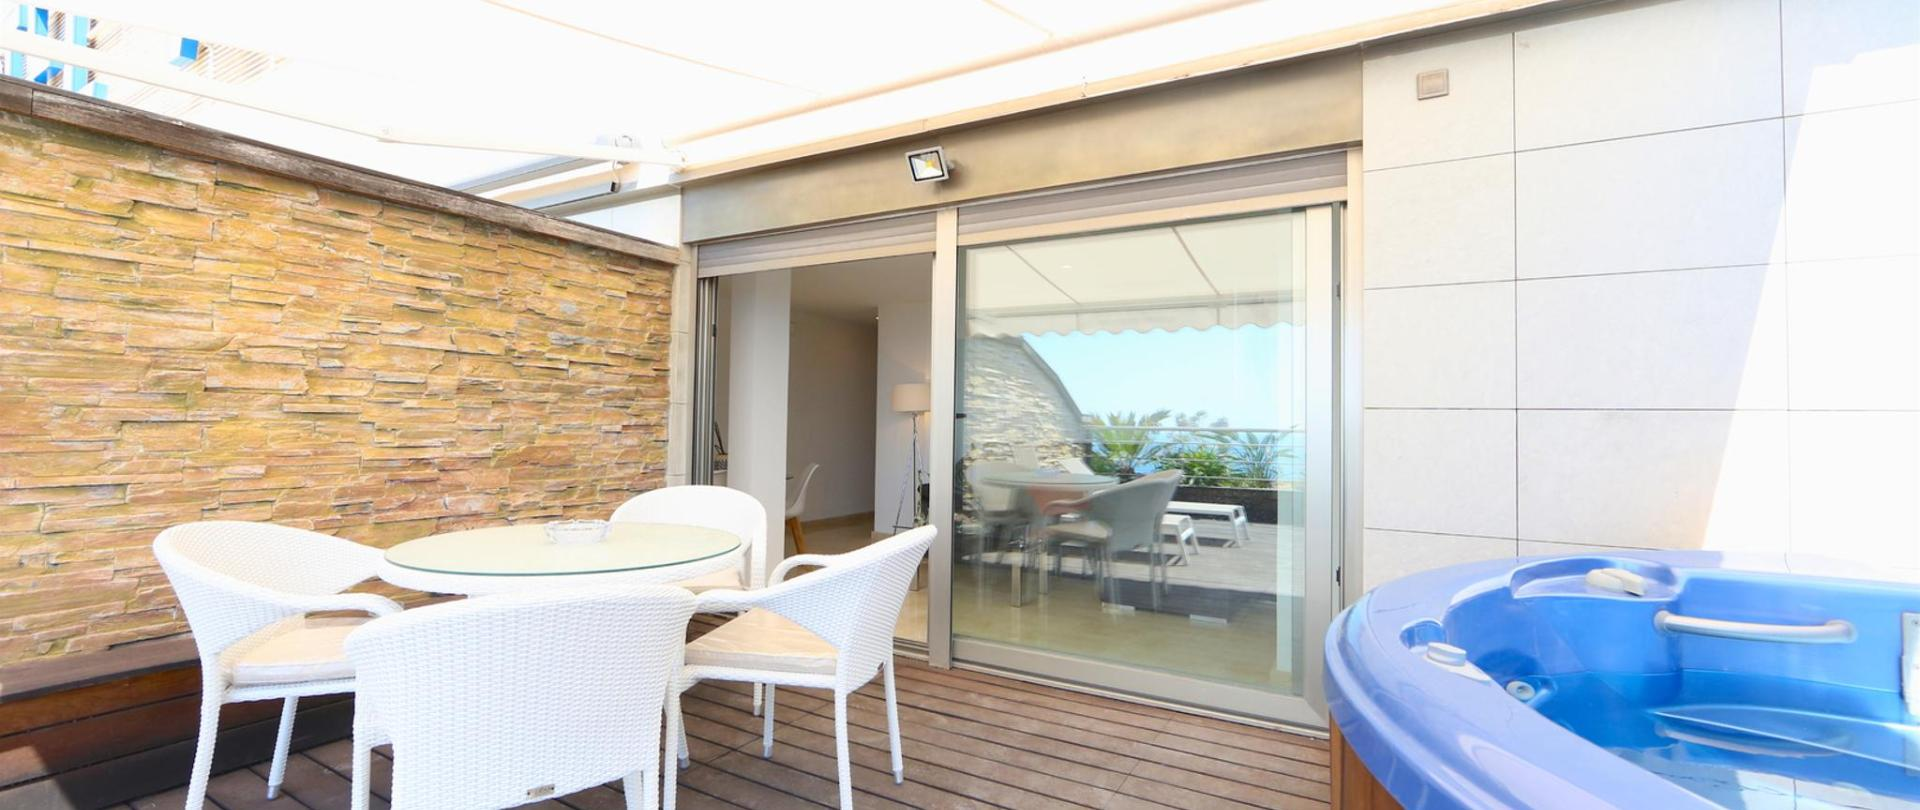 penthouses Alicante